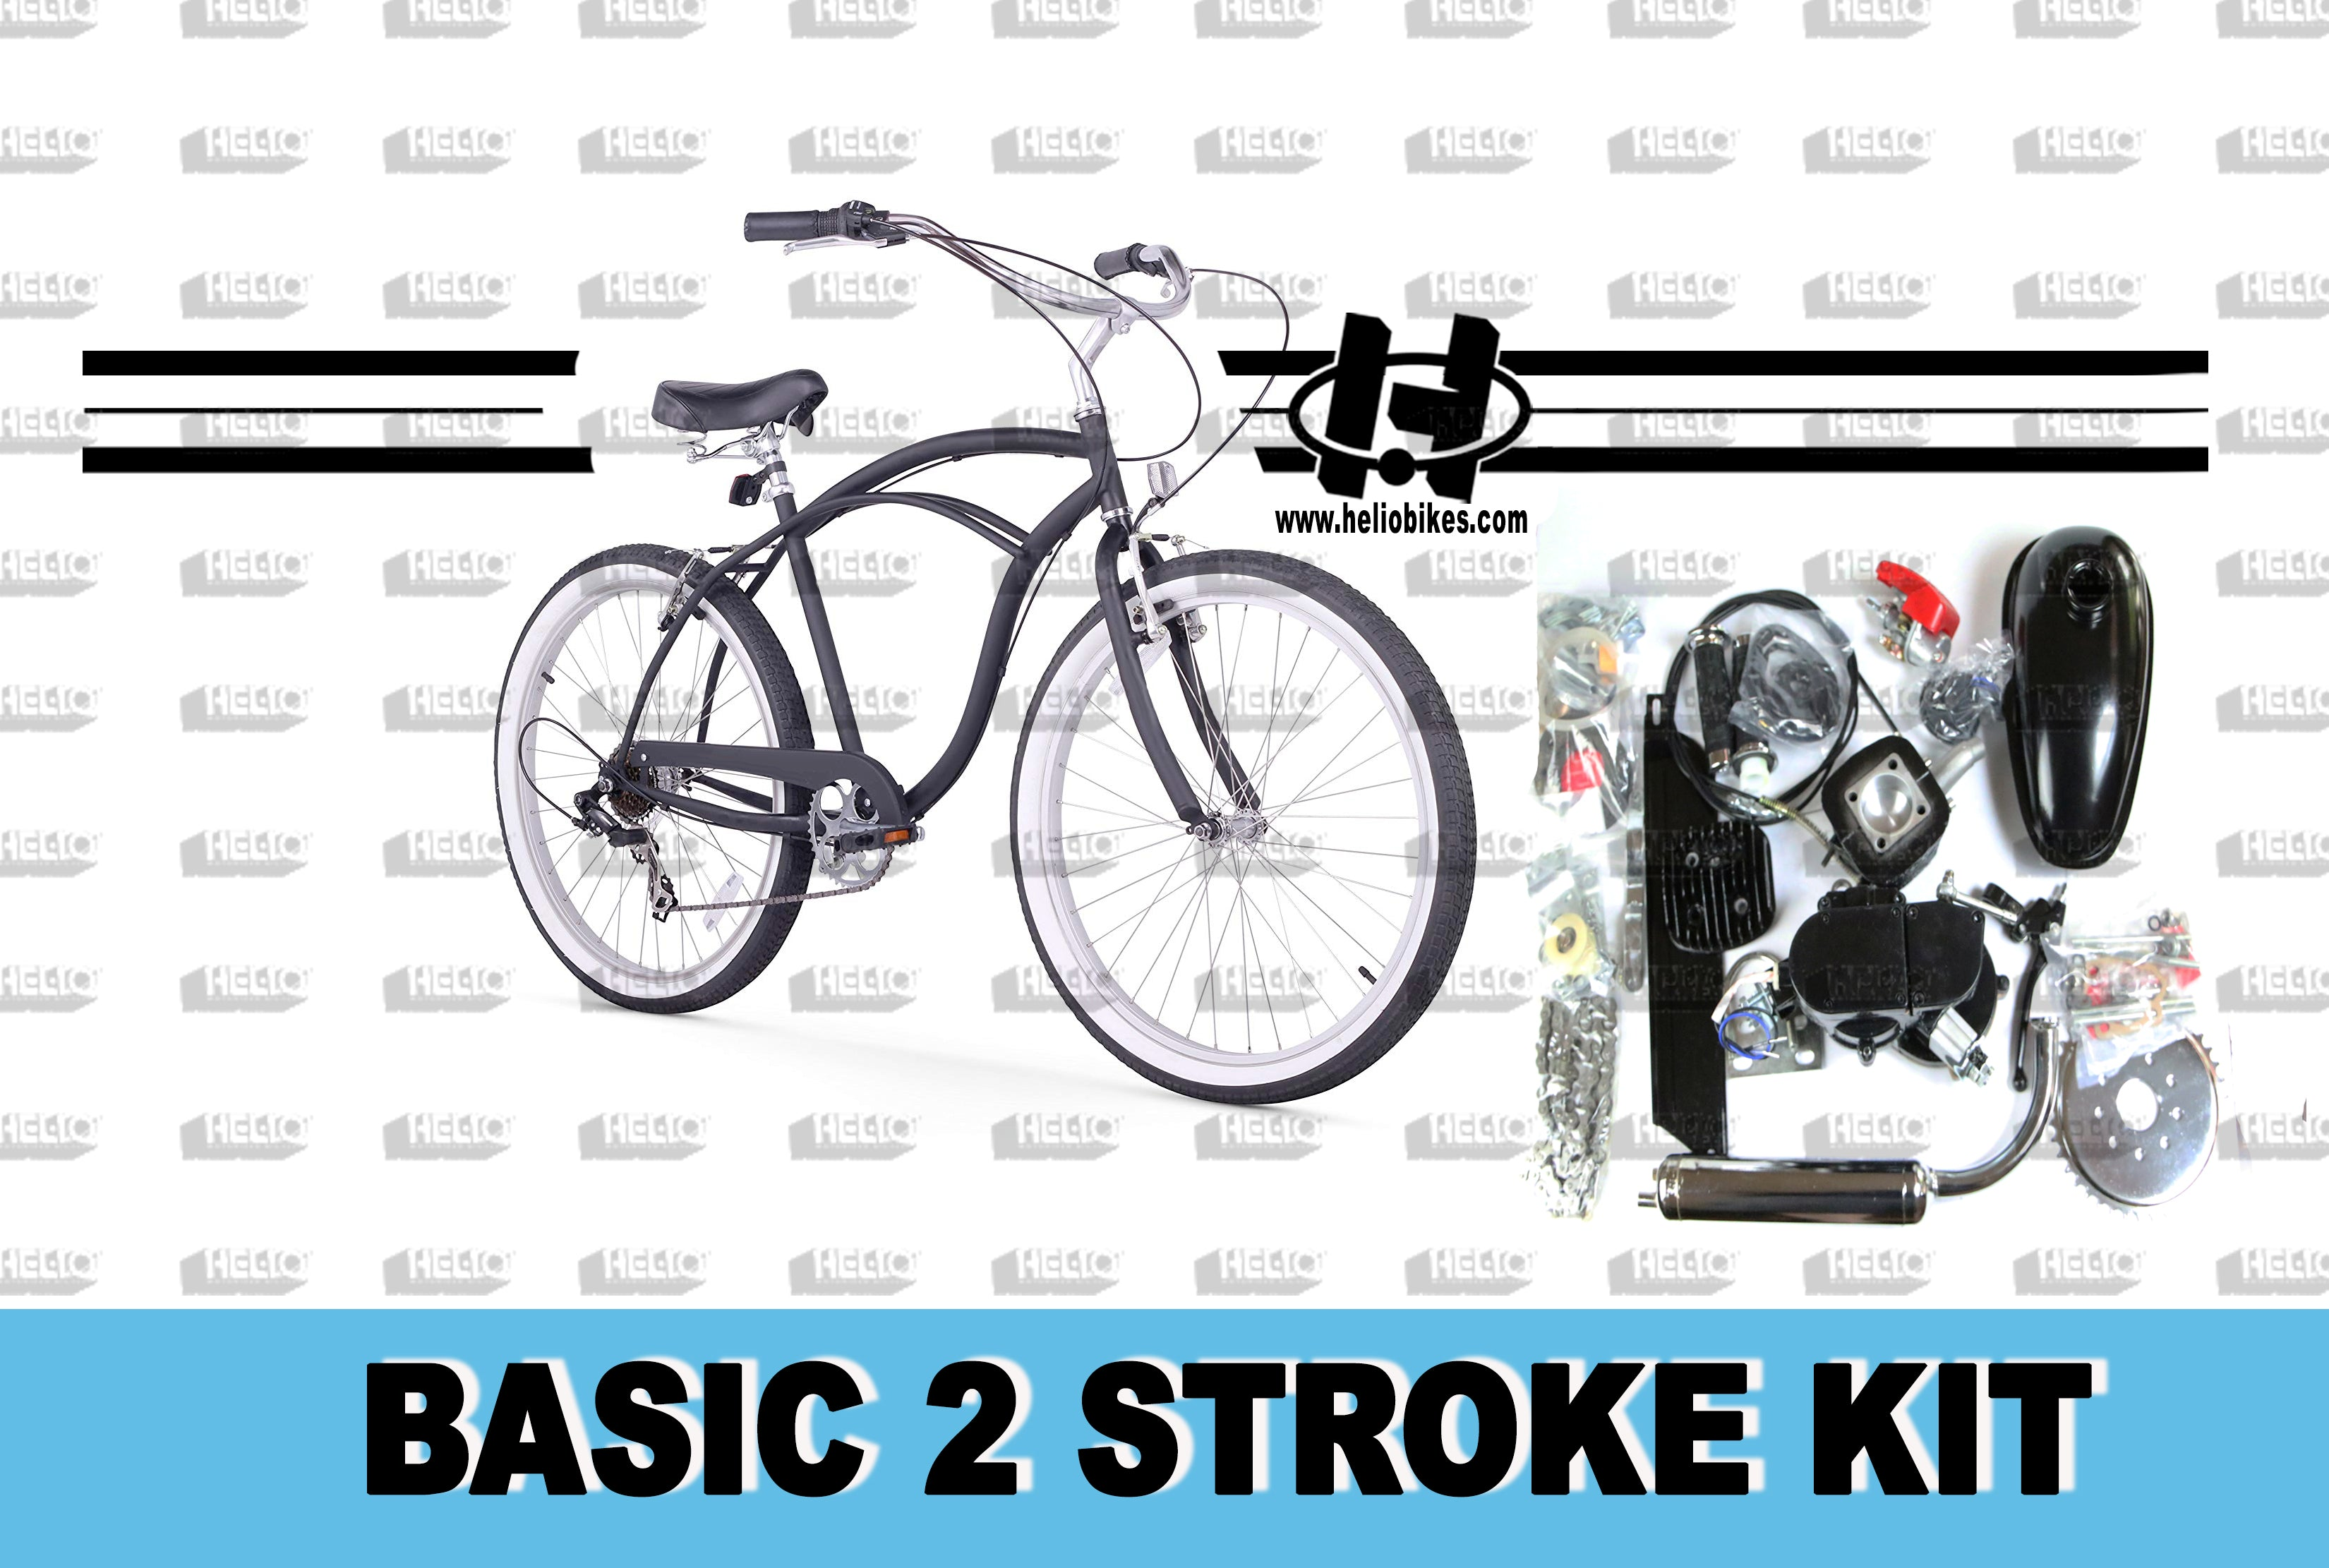 Basic 2 Stroke Kit with Bike